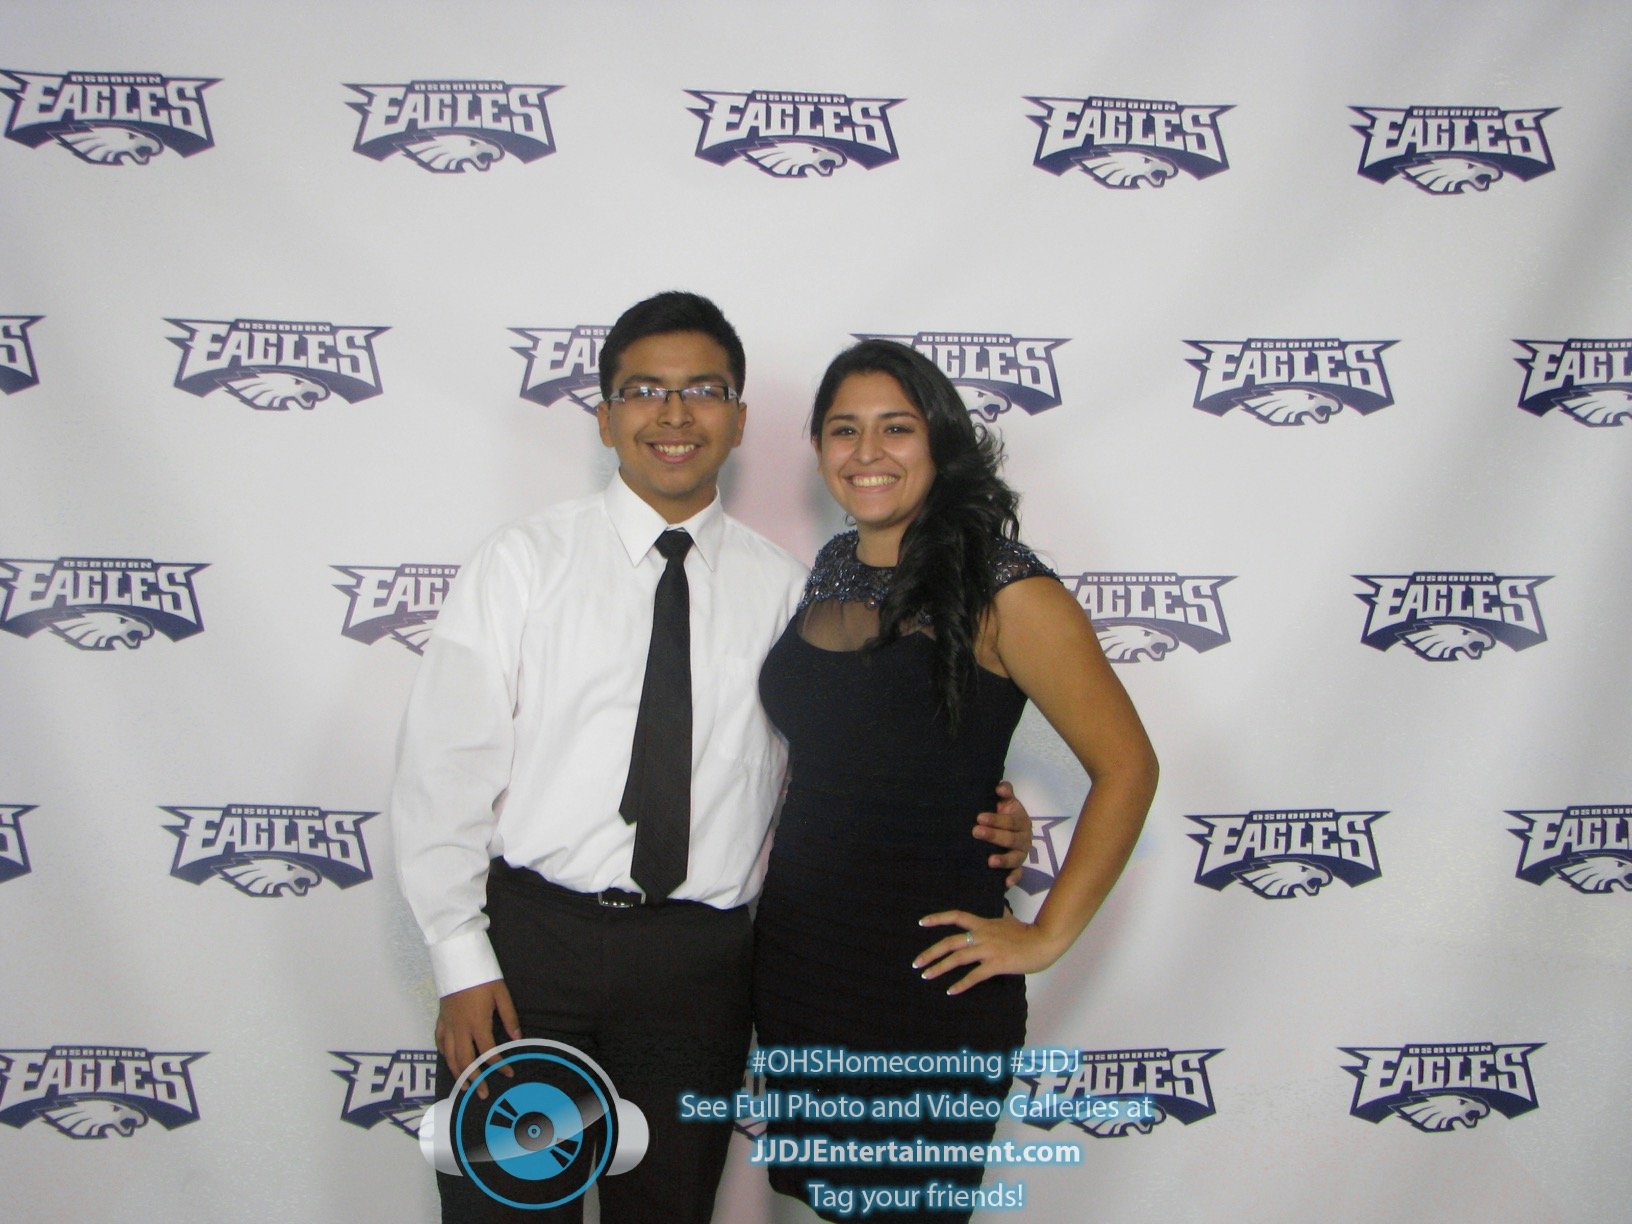 OHS 2014 Homecoming Photobooth -178